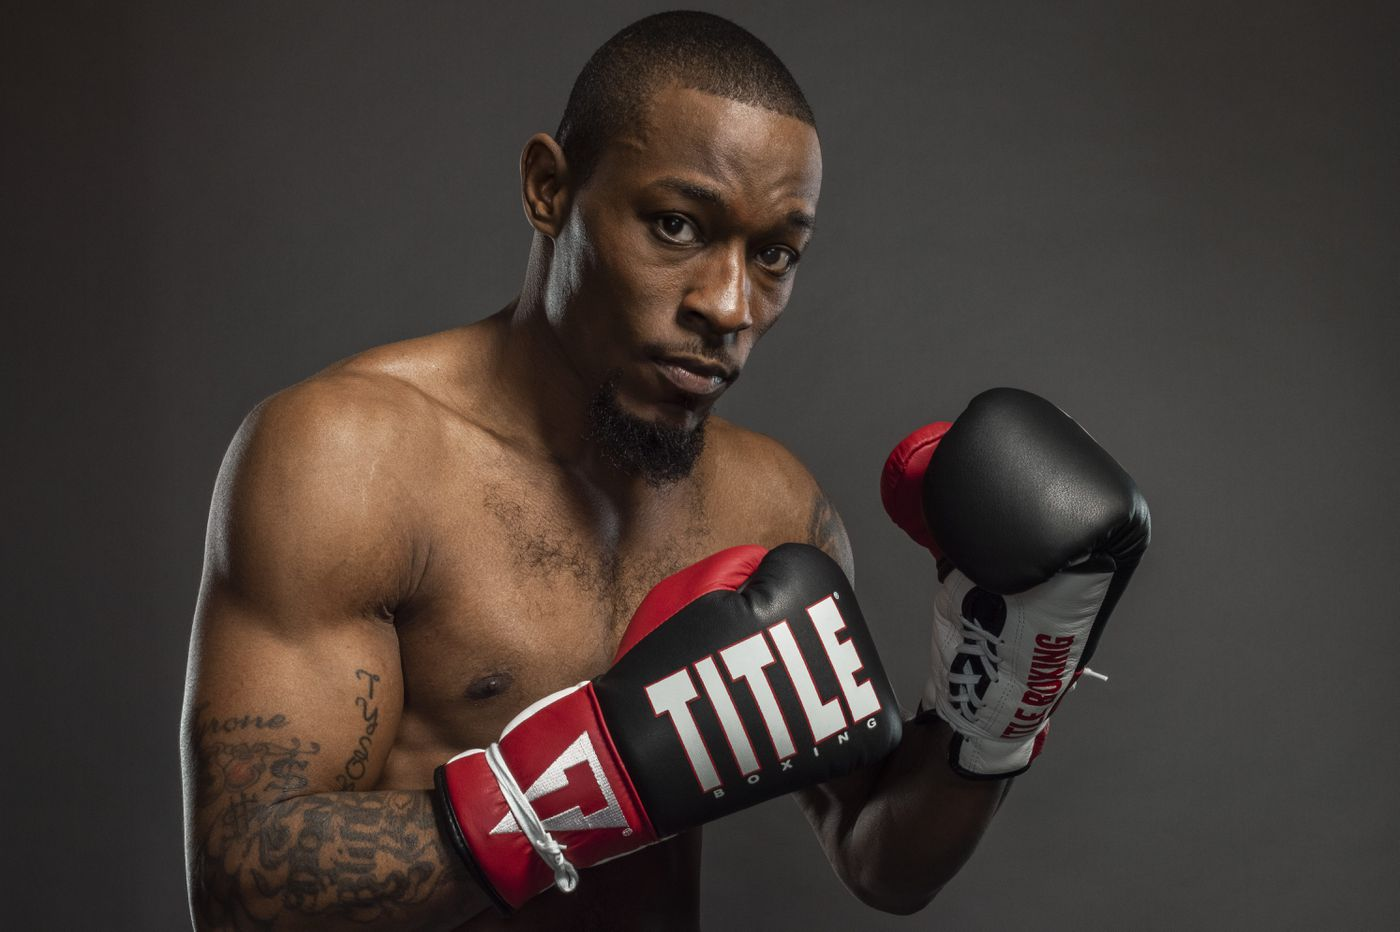 Philly fighter, trainer featured in revival of 'The Contender'